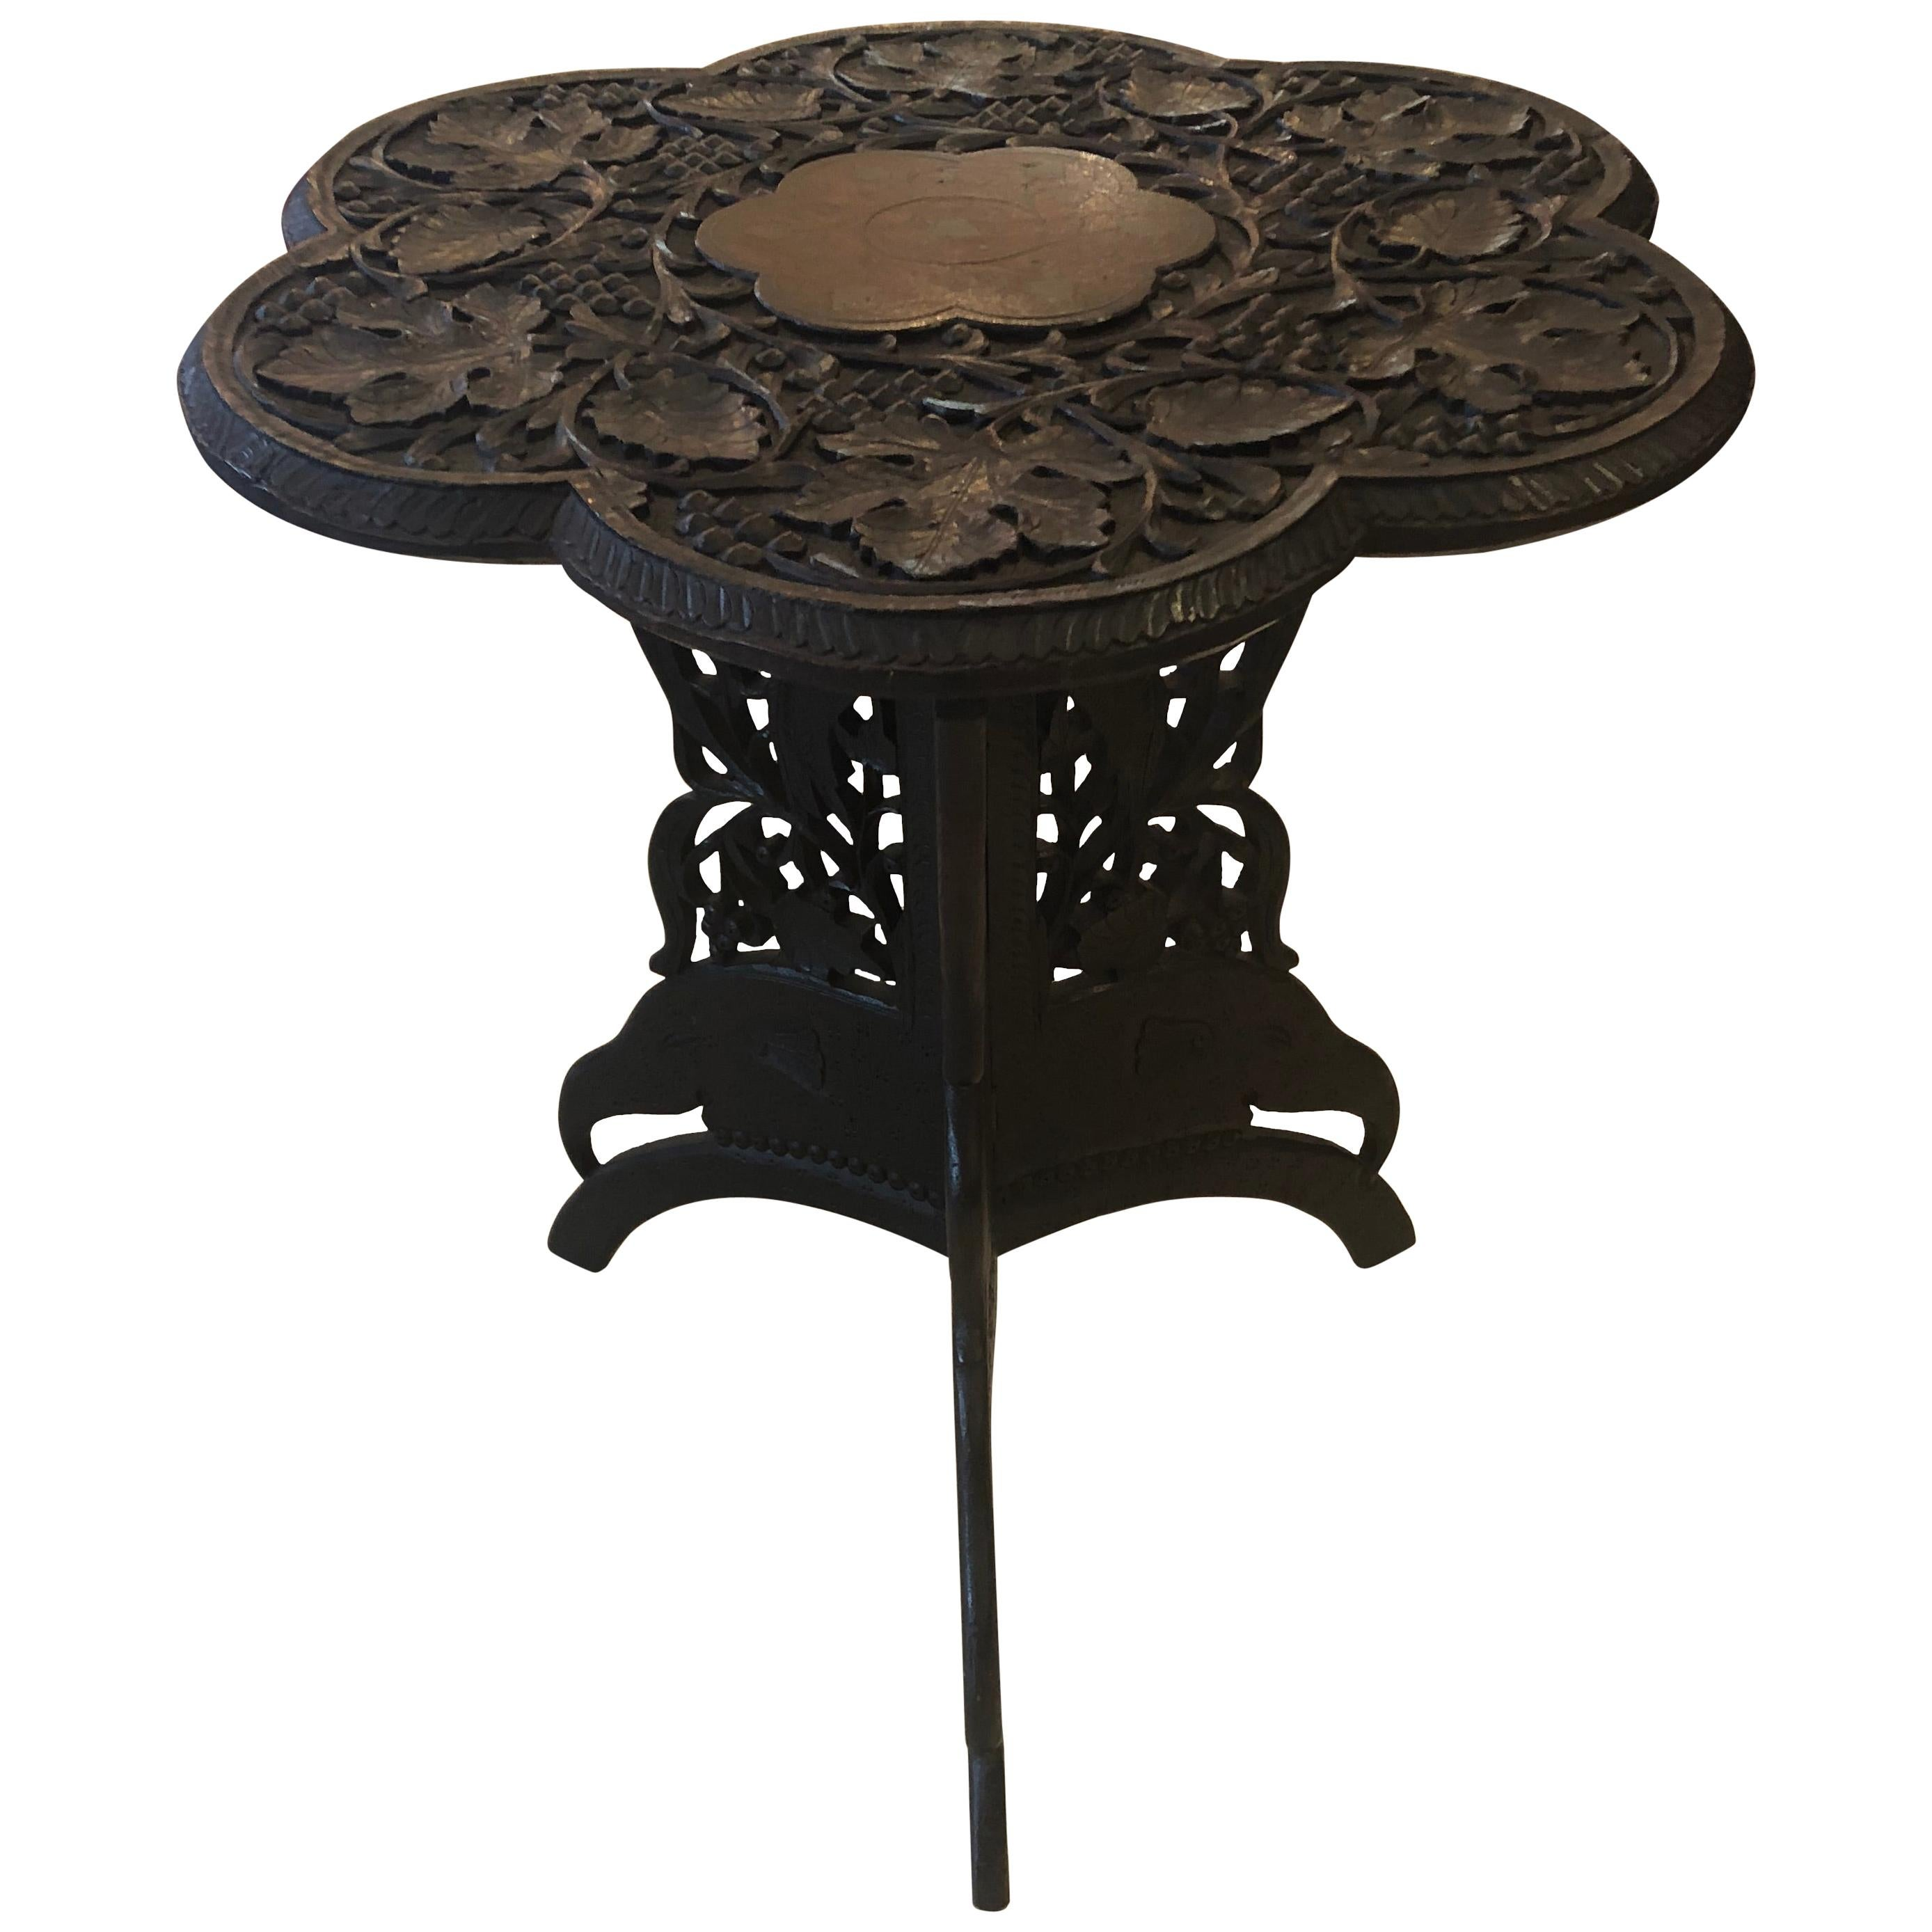 Beautiful Flower Shaped Anglo-Indian Carved Wood End Side Table